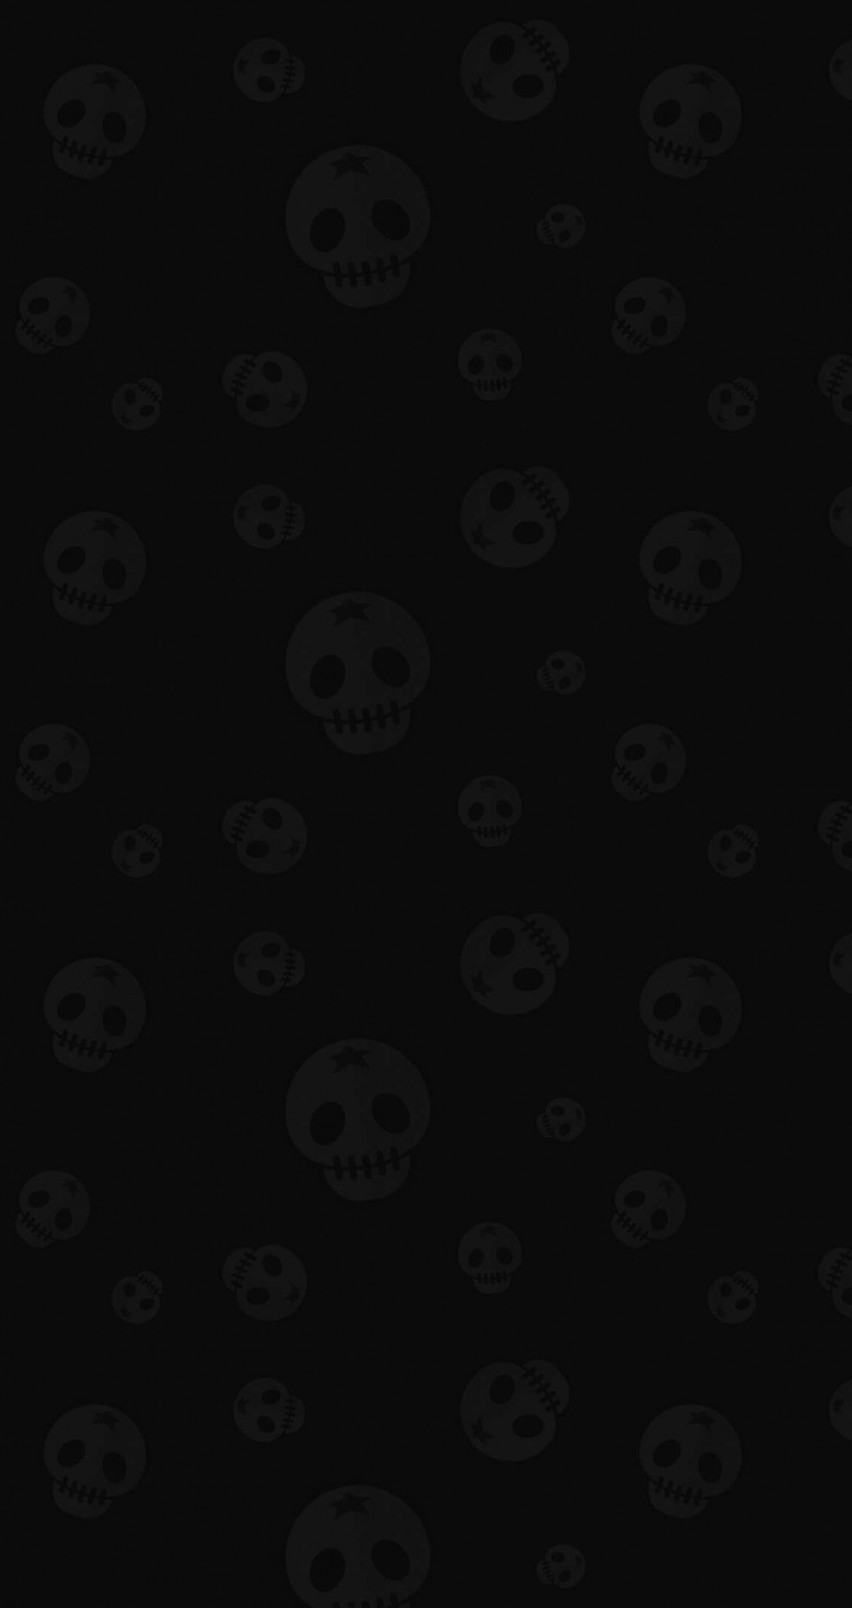 Star Skull Pattern Wallpaper for Apple iPhone 6 / 6s